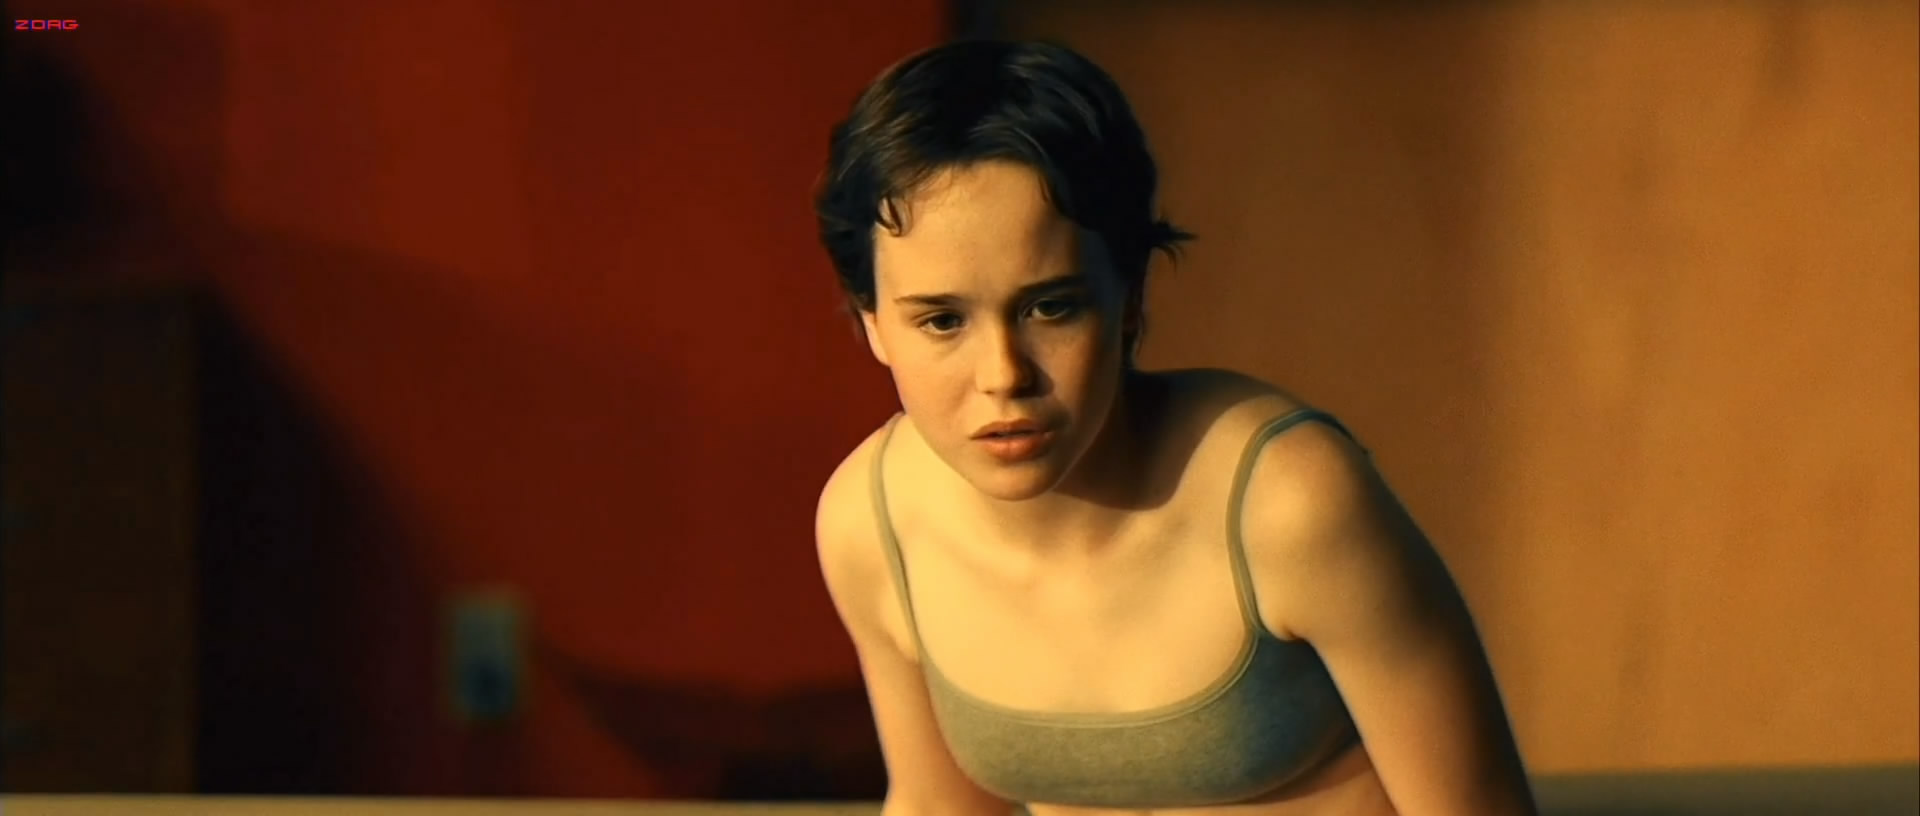 Ellen Page cute and sexy - Hard Candy (2005) HD1080p